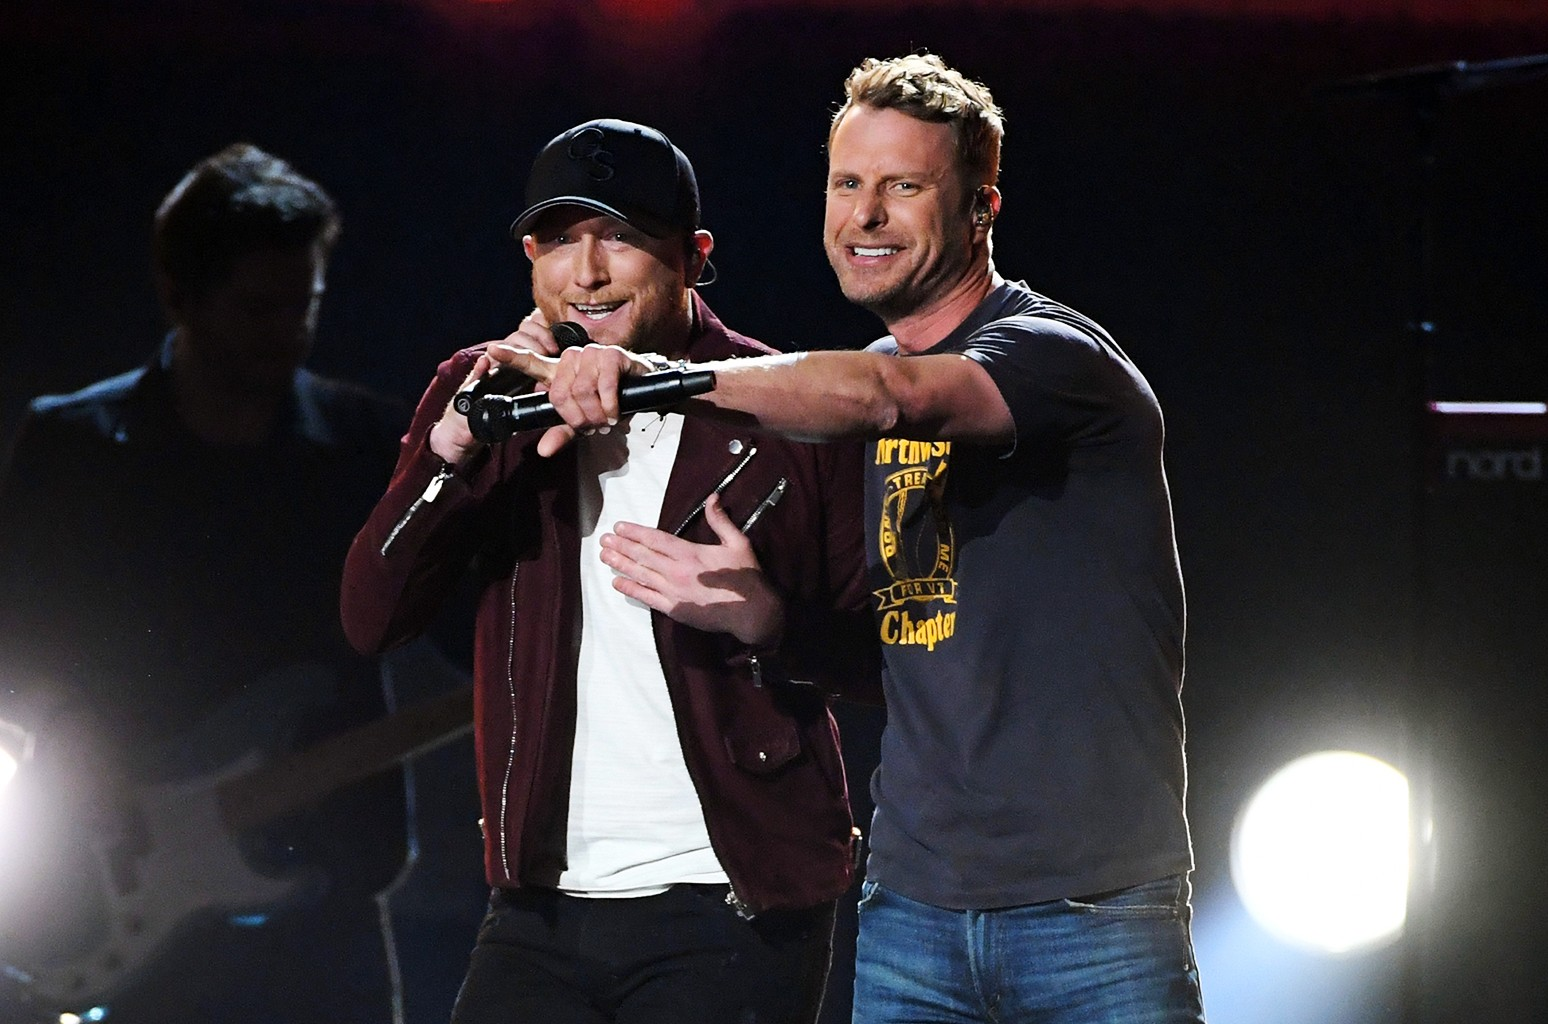 WATCH: Dierks Bentley Rocks 2011 ACM Awards with Am I The